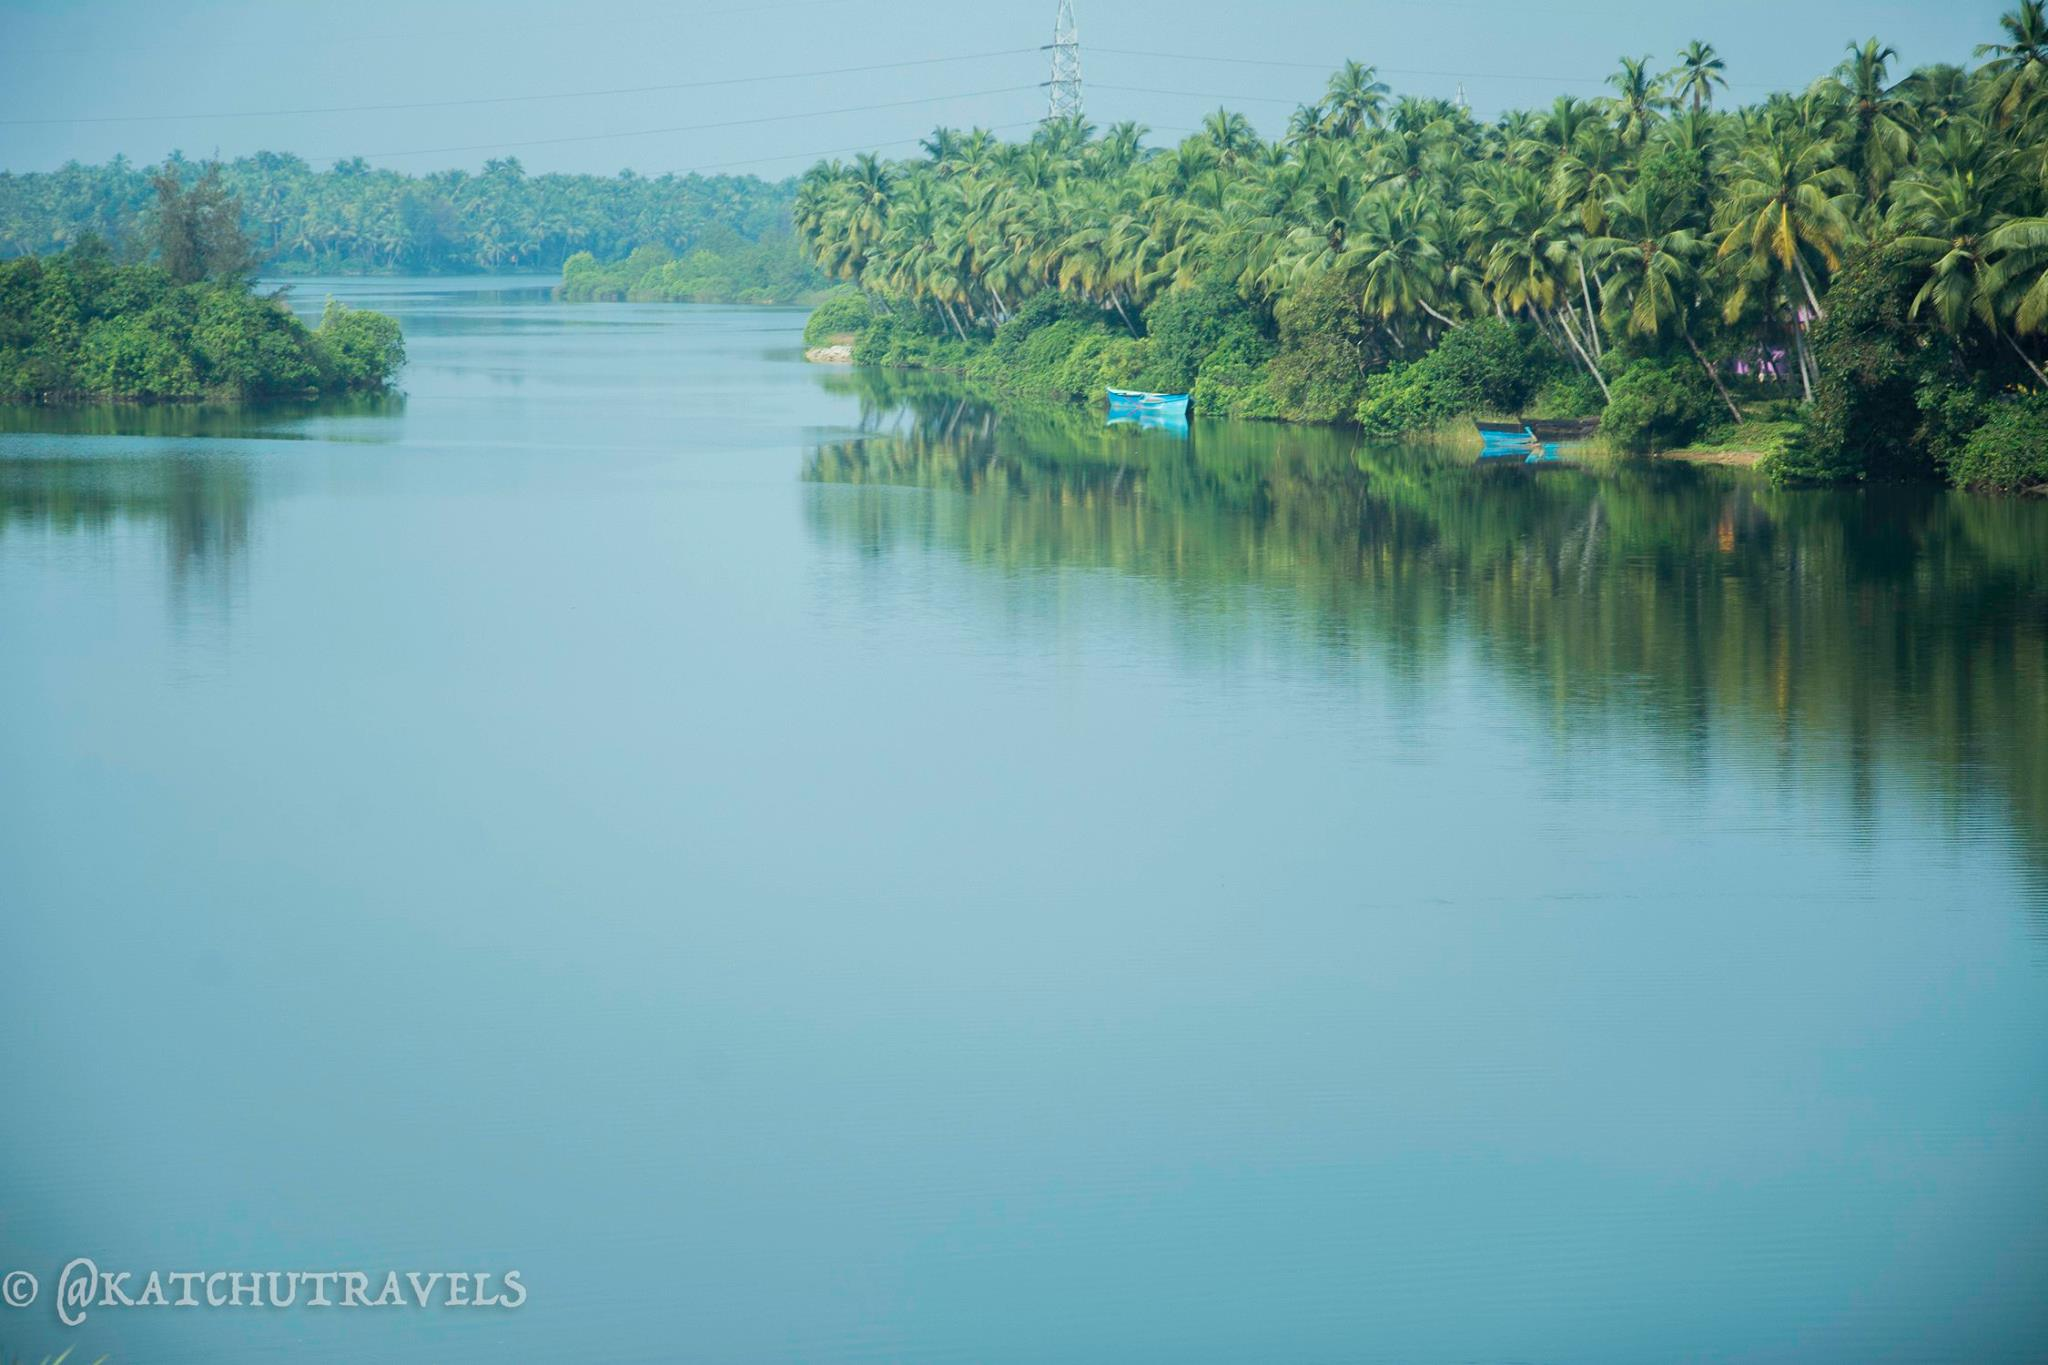 Serene views of a waterbody on the Konkan Railway route